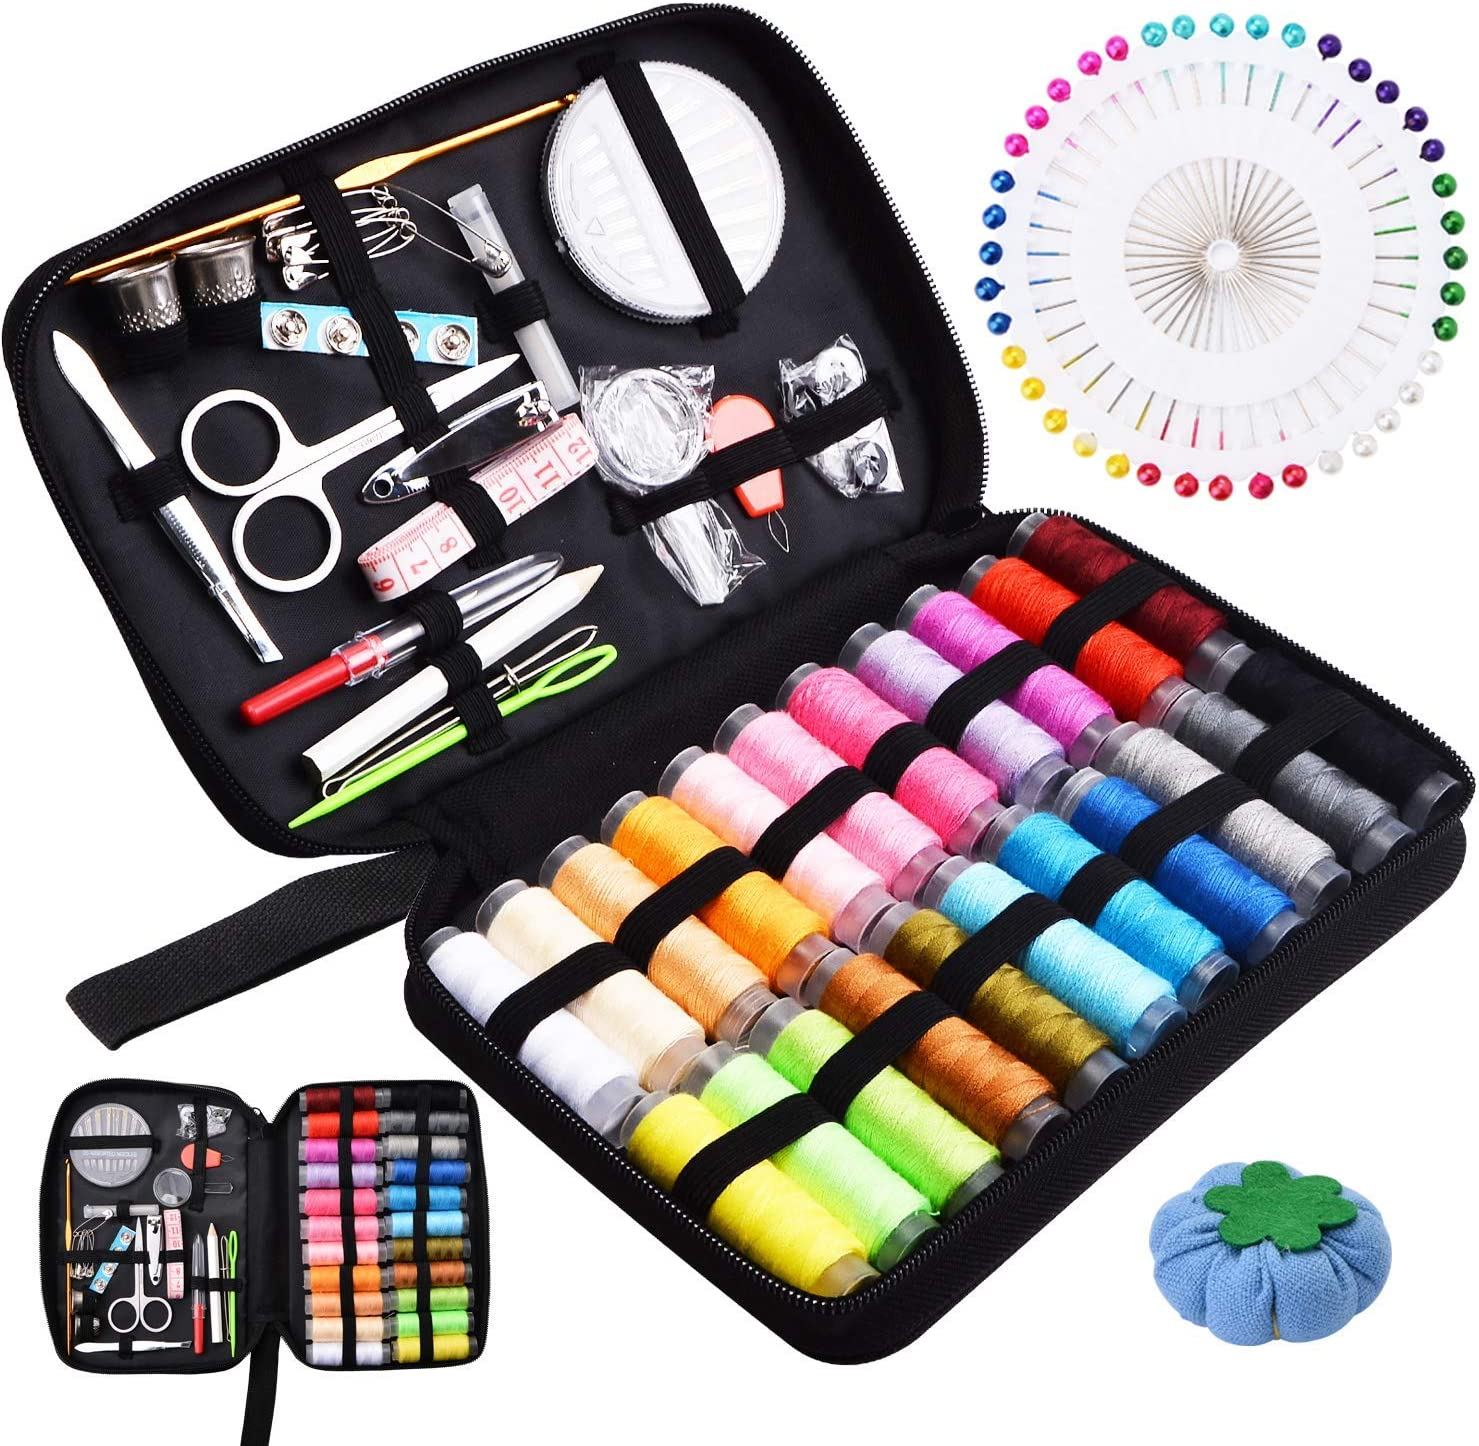 L-Hydrone Phoenix Financial sales sale Mall Sewing Kit for Beginner Traveler DIY Emergency Adults